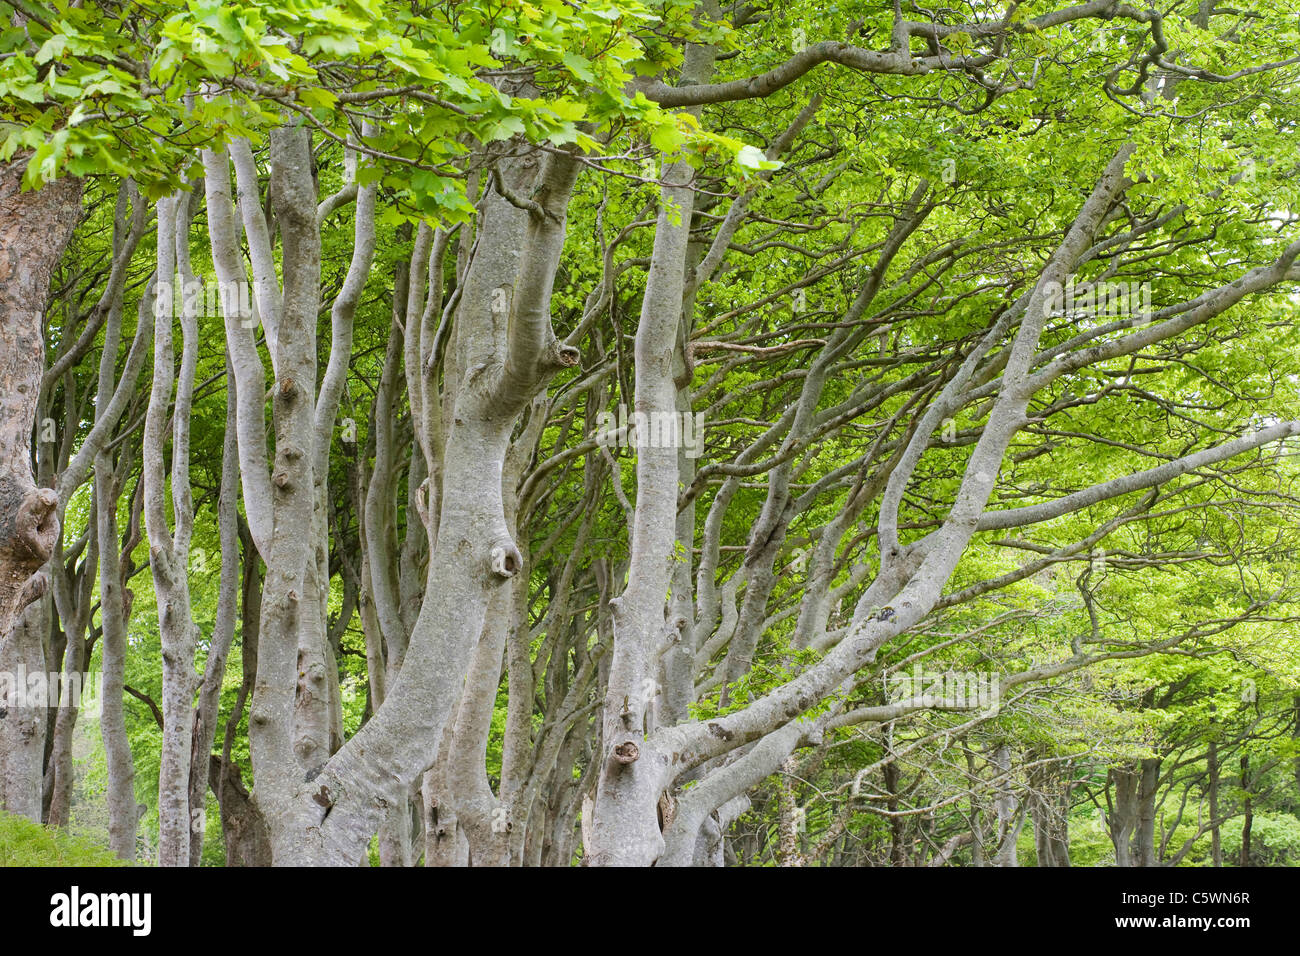 Common Beech, European Beech (Fagus sylvatica). Trees in early spring. Isle of Mull, Scotland, Great Britain. - Stock Image